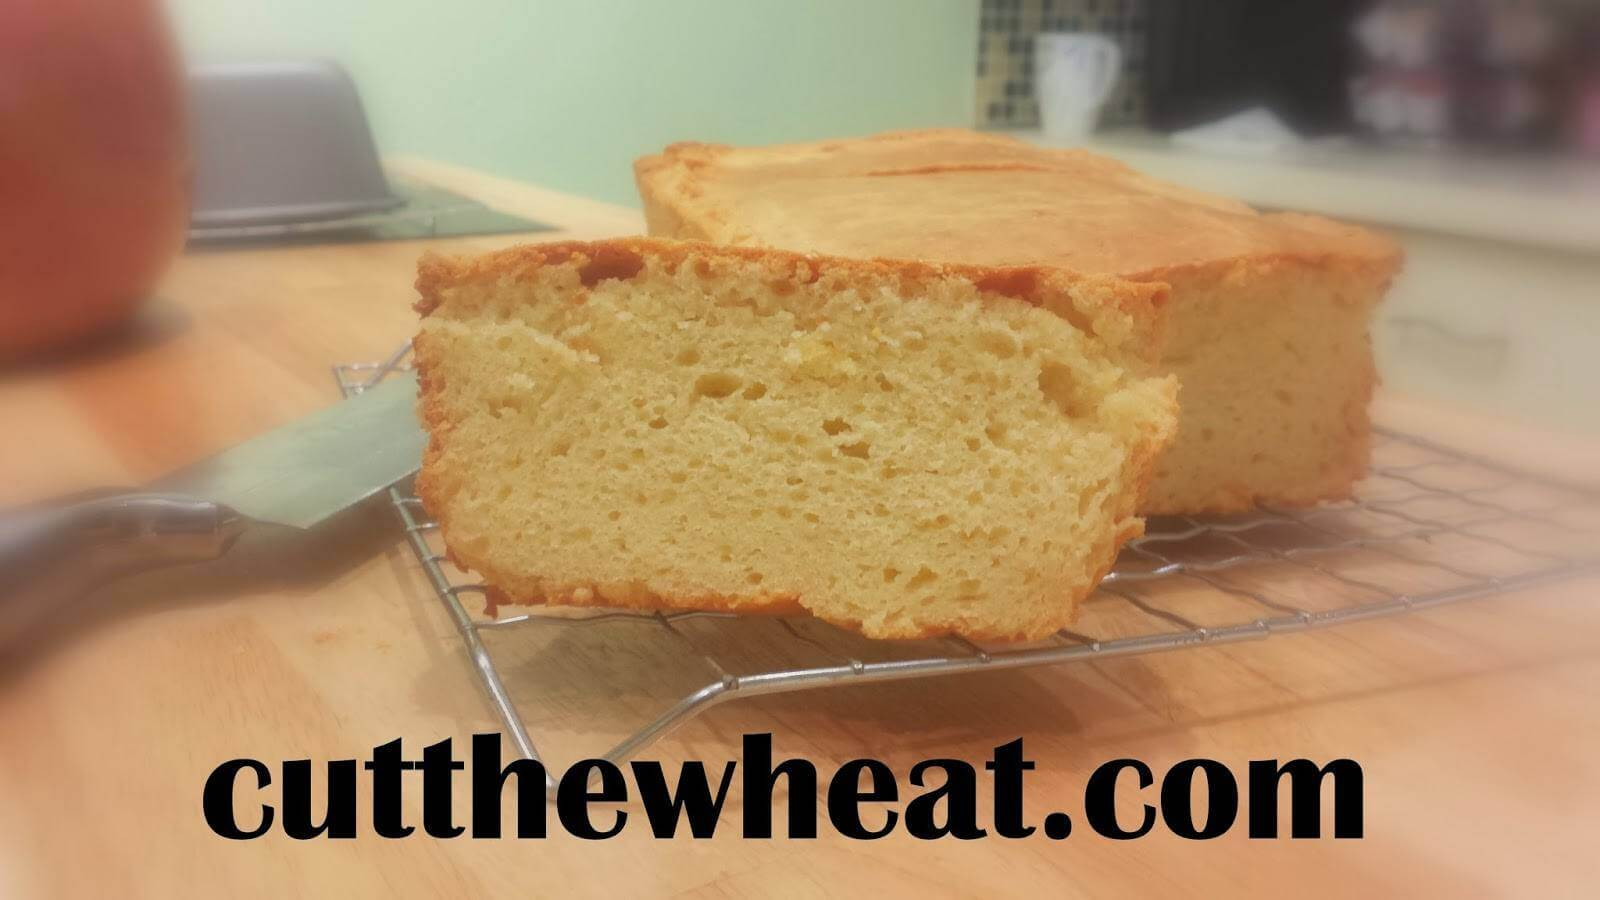 Low Carb Pound Cake Recipes: Moist, Buttery Pound Cake